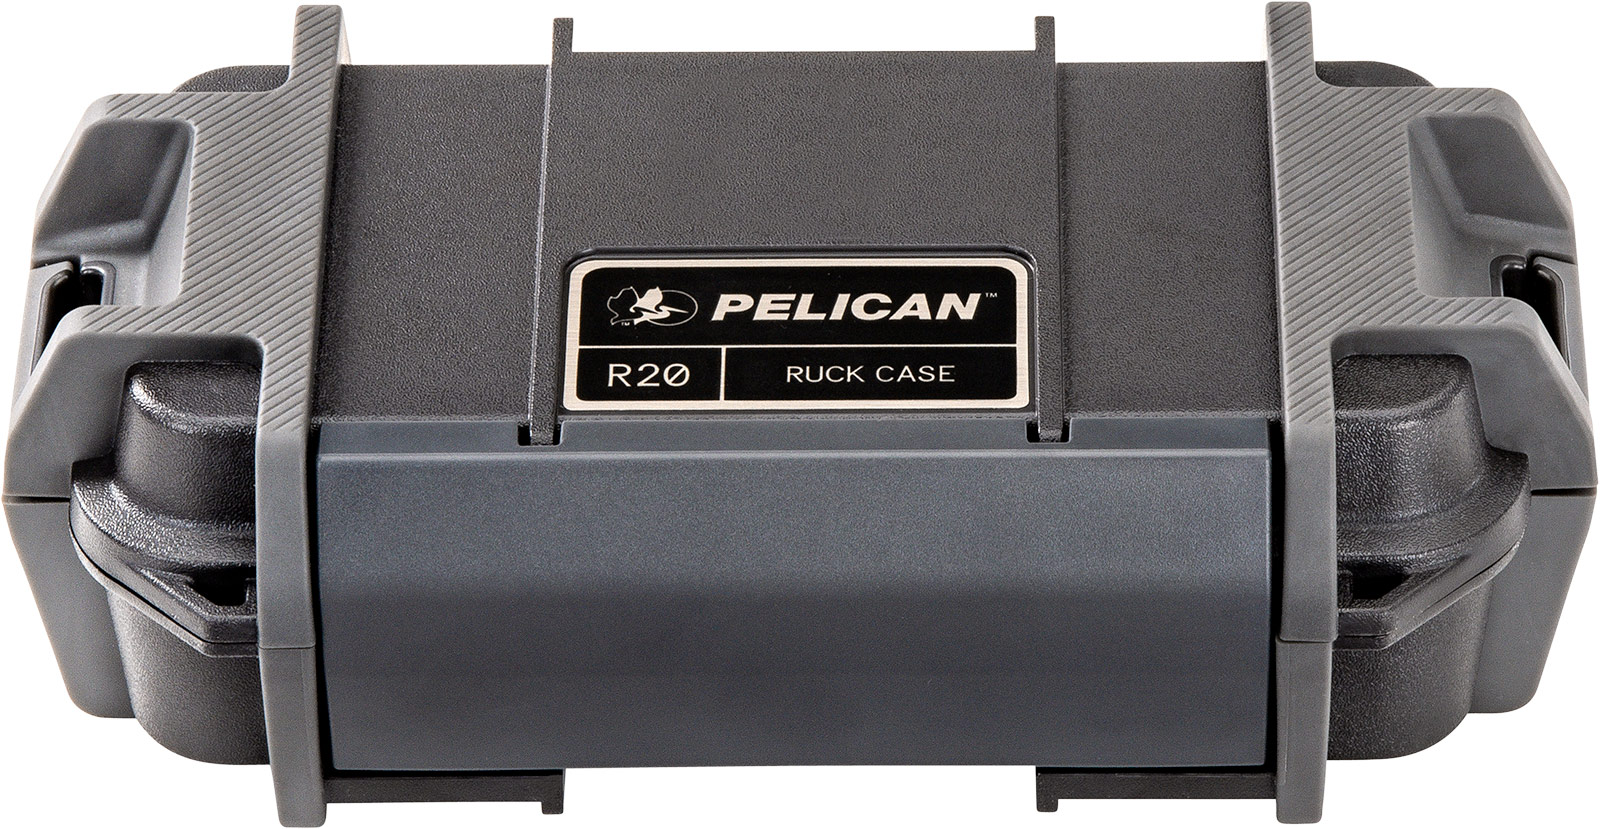 pelican r20 ruck rubberized case